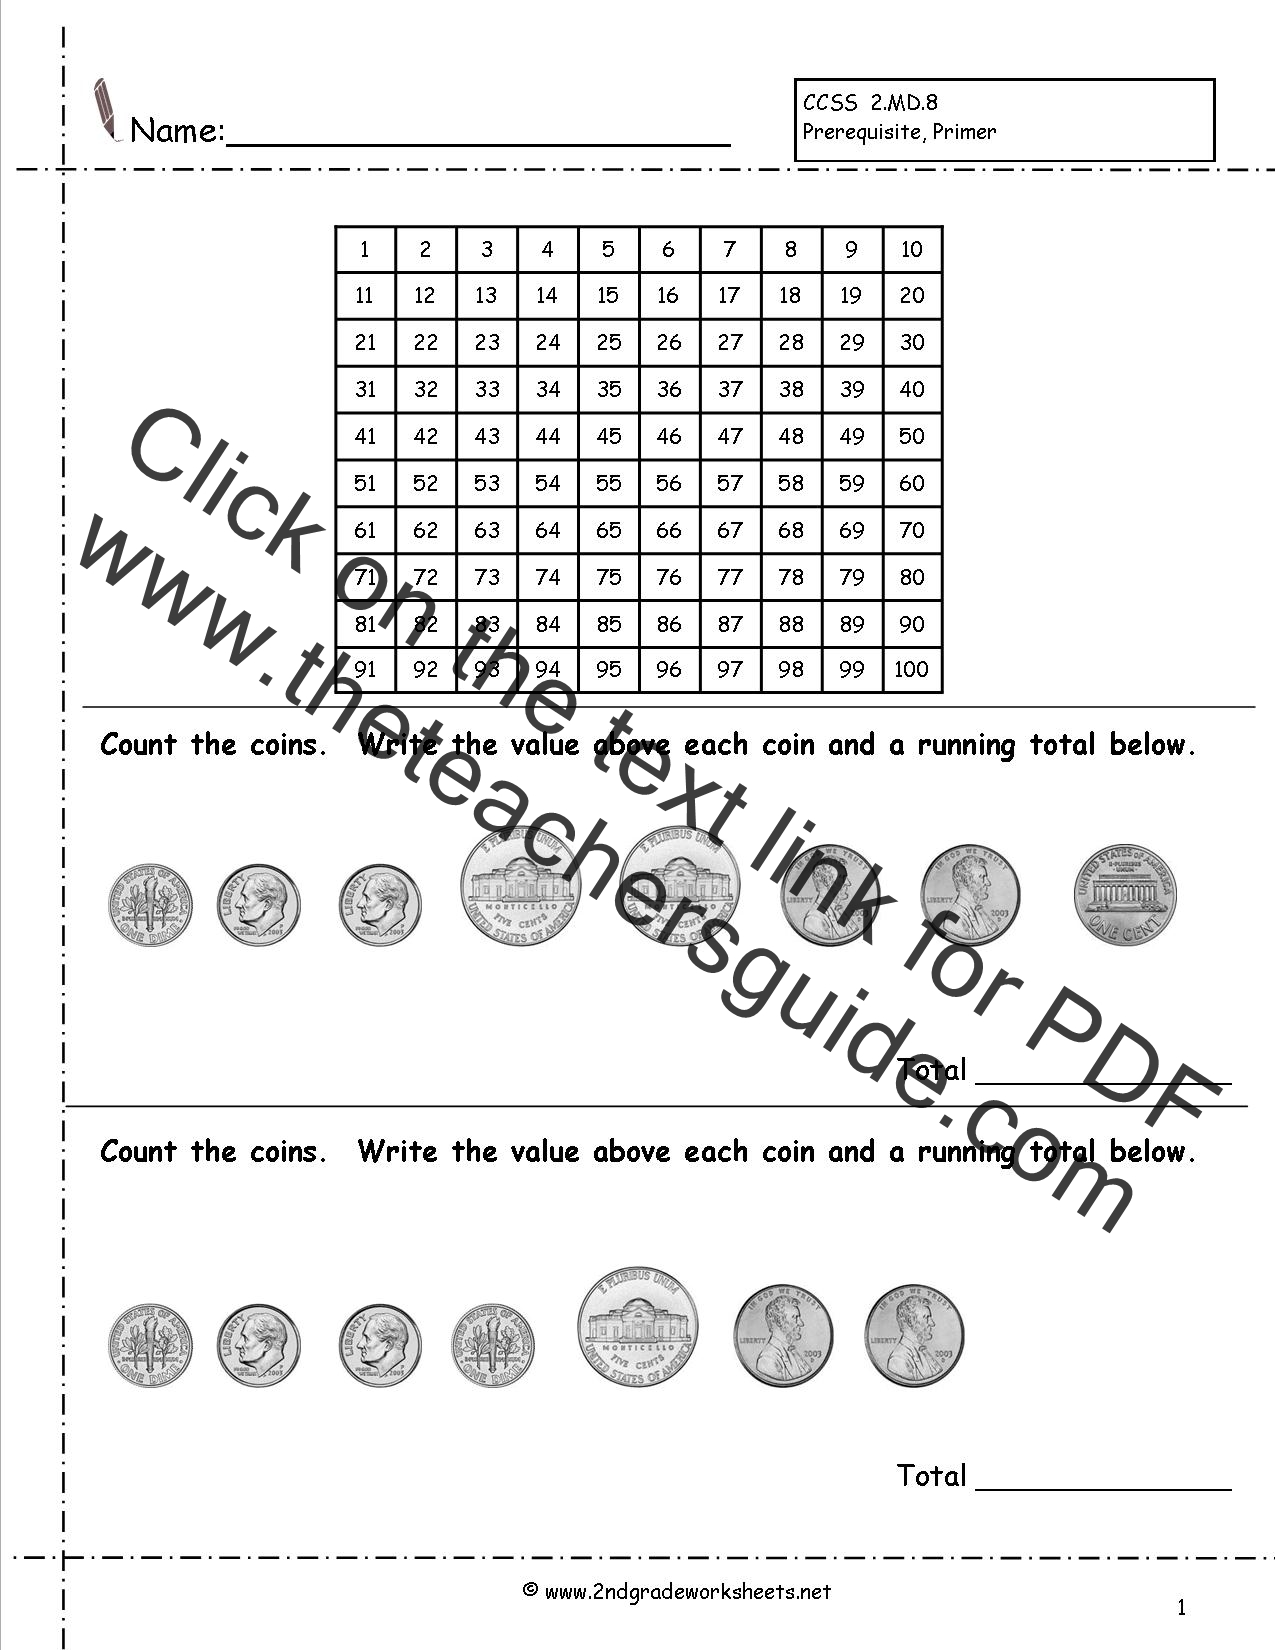 Worksheet Counting Coins And Bills